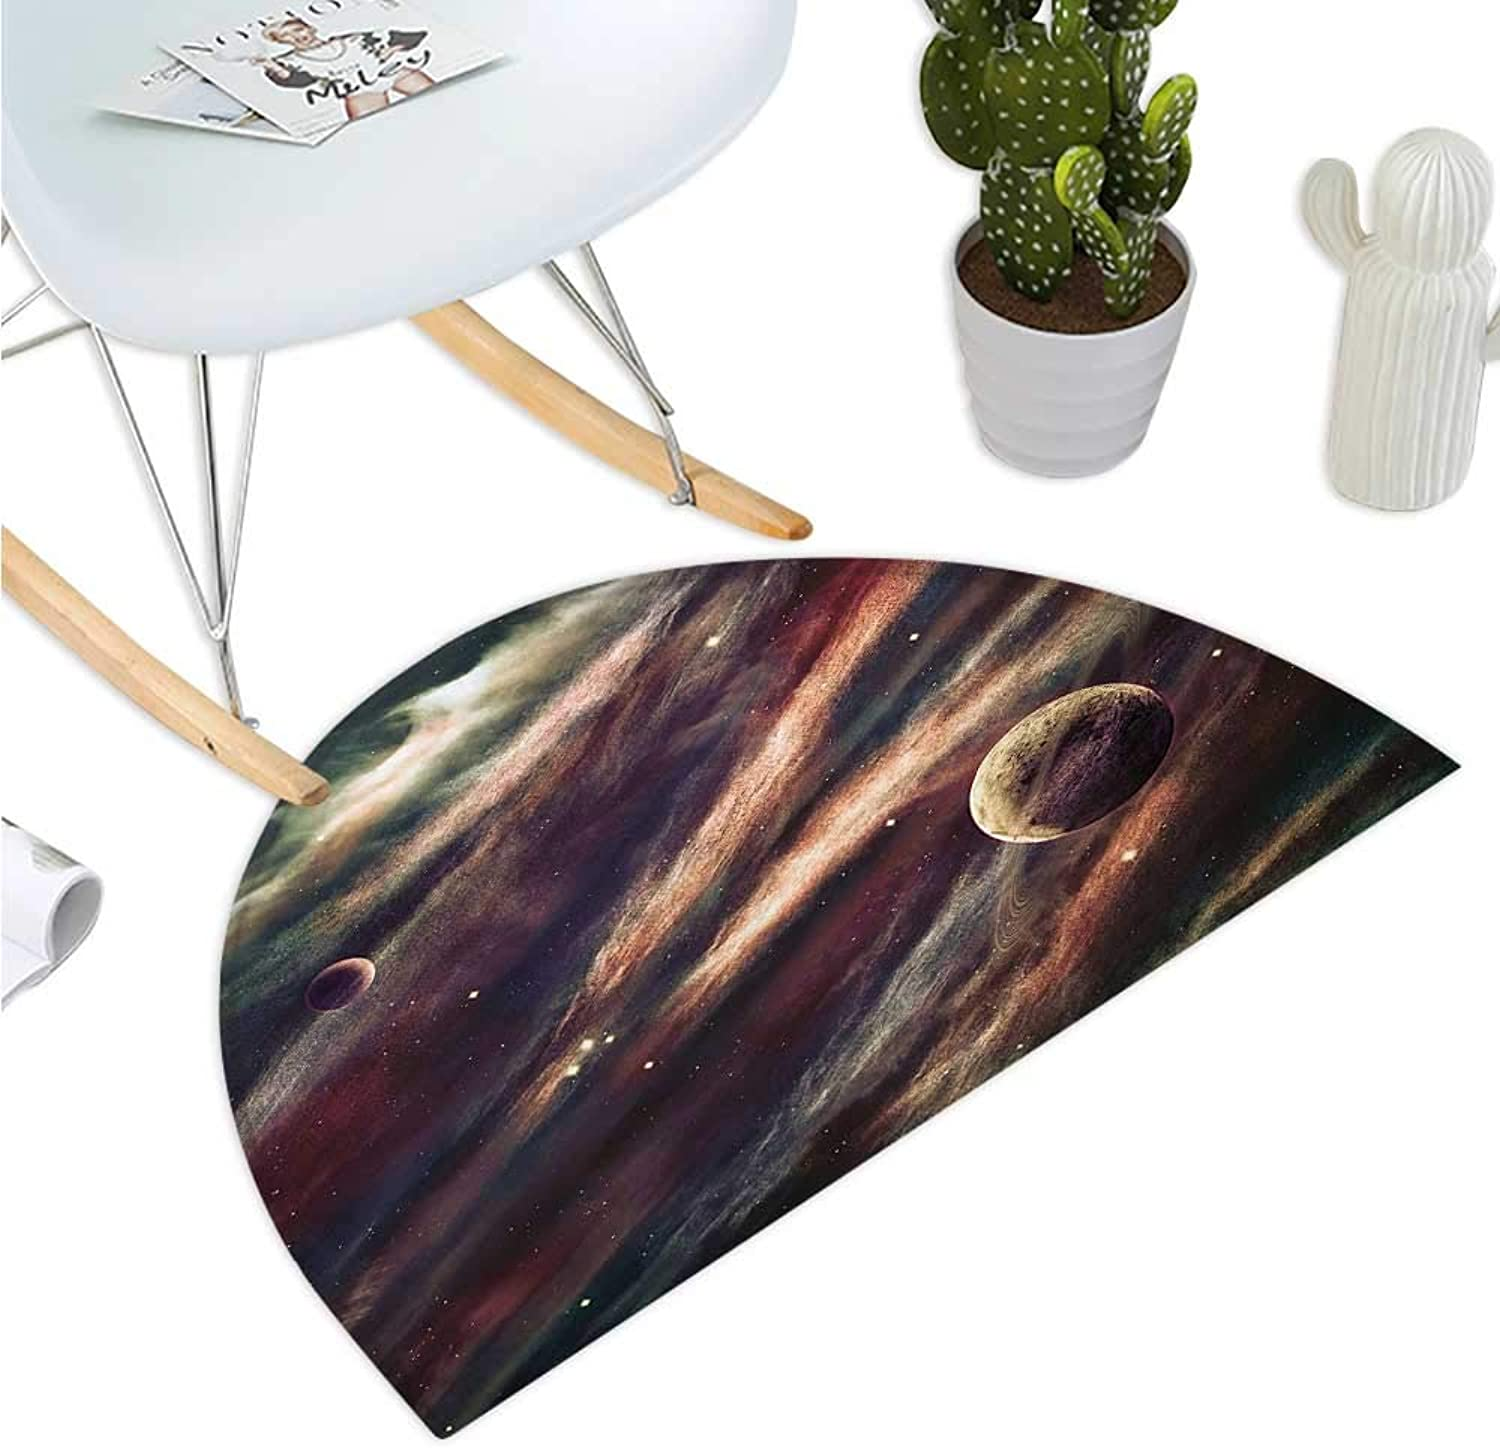 Outer Space Semicircular Cushion Planets Over Nebula Gas Cloud Space Mystical Galaxy Star Illustration Bathroom Mat H 35.4  xD 53.1  Dried pink Ivory